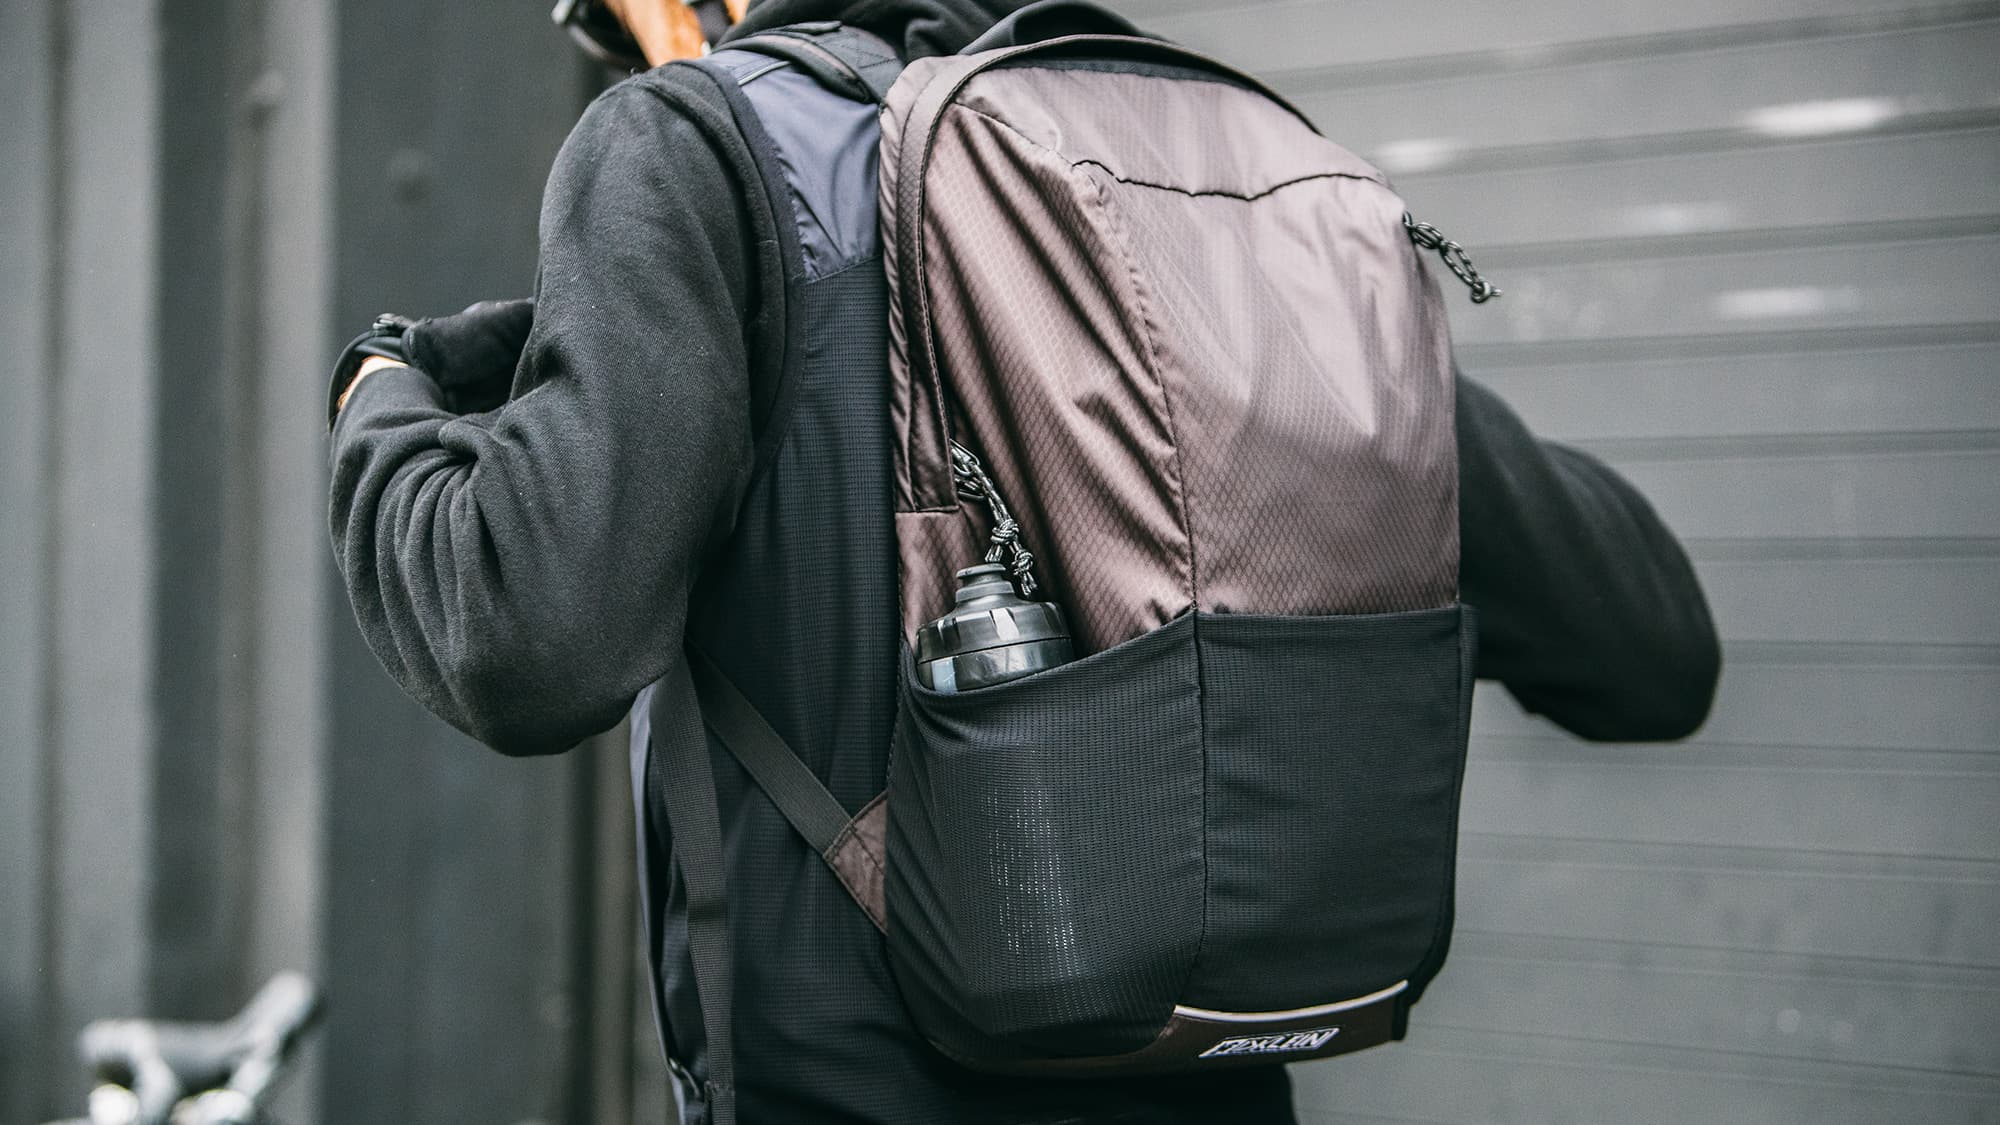 DKlein Semantics backpack